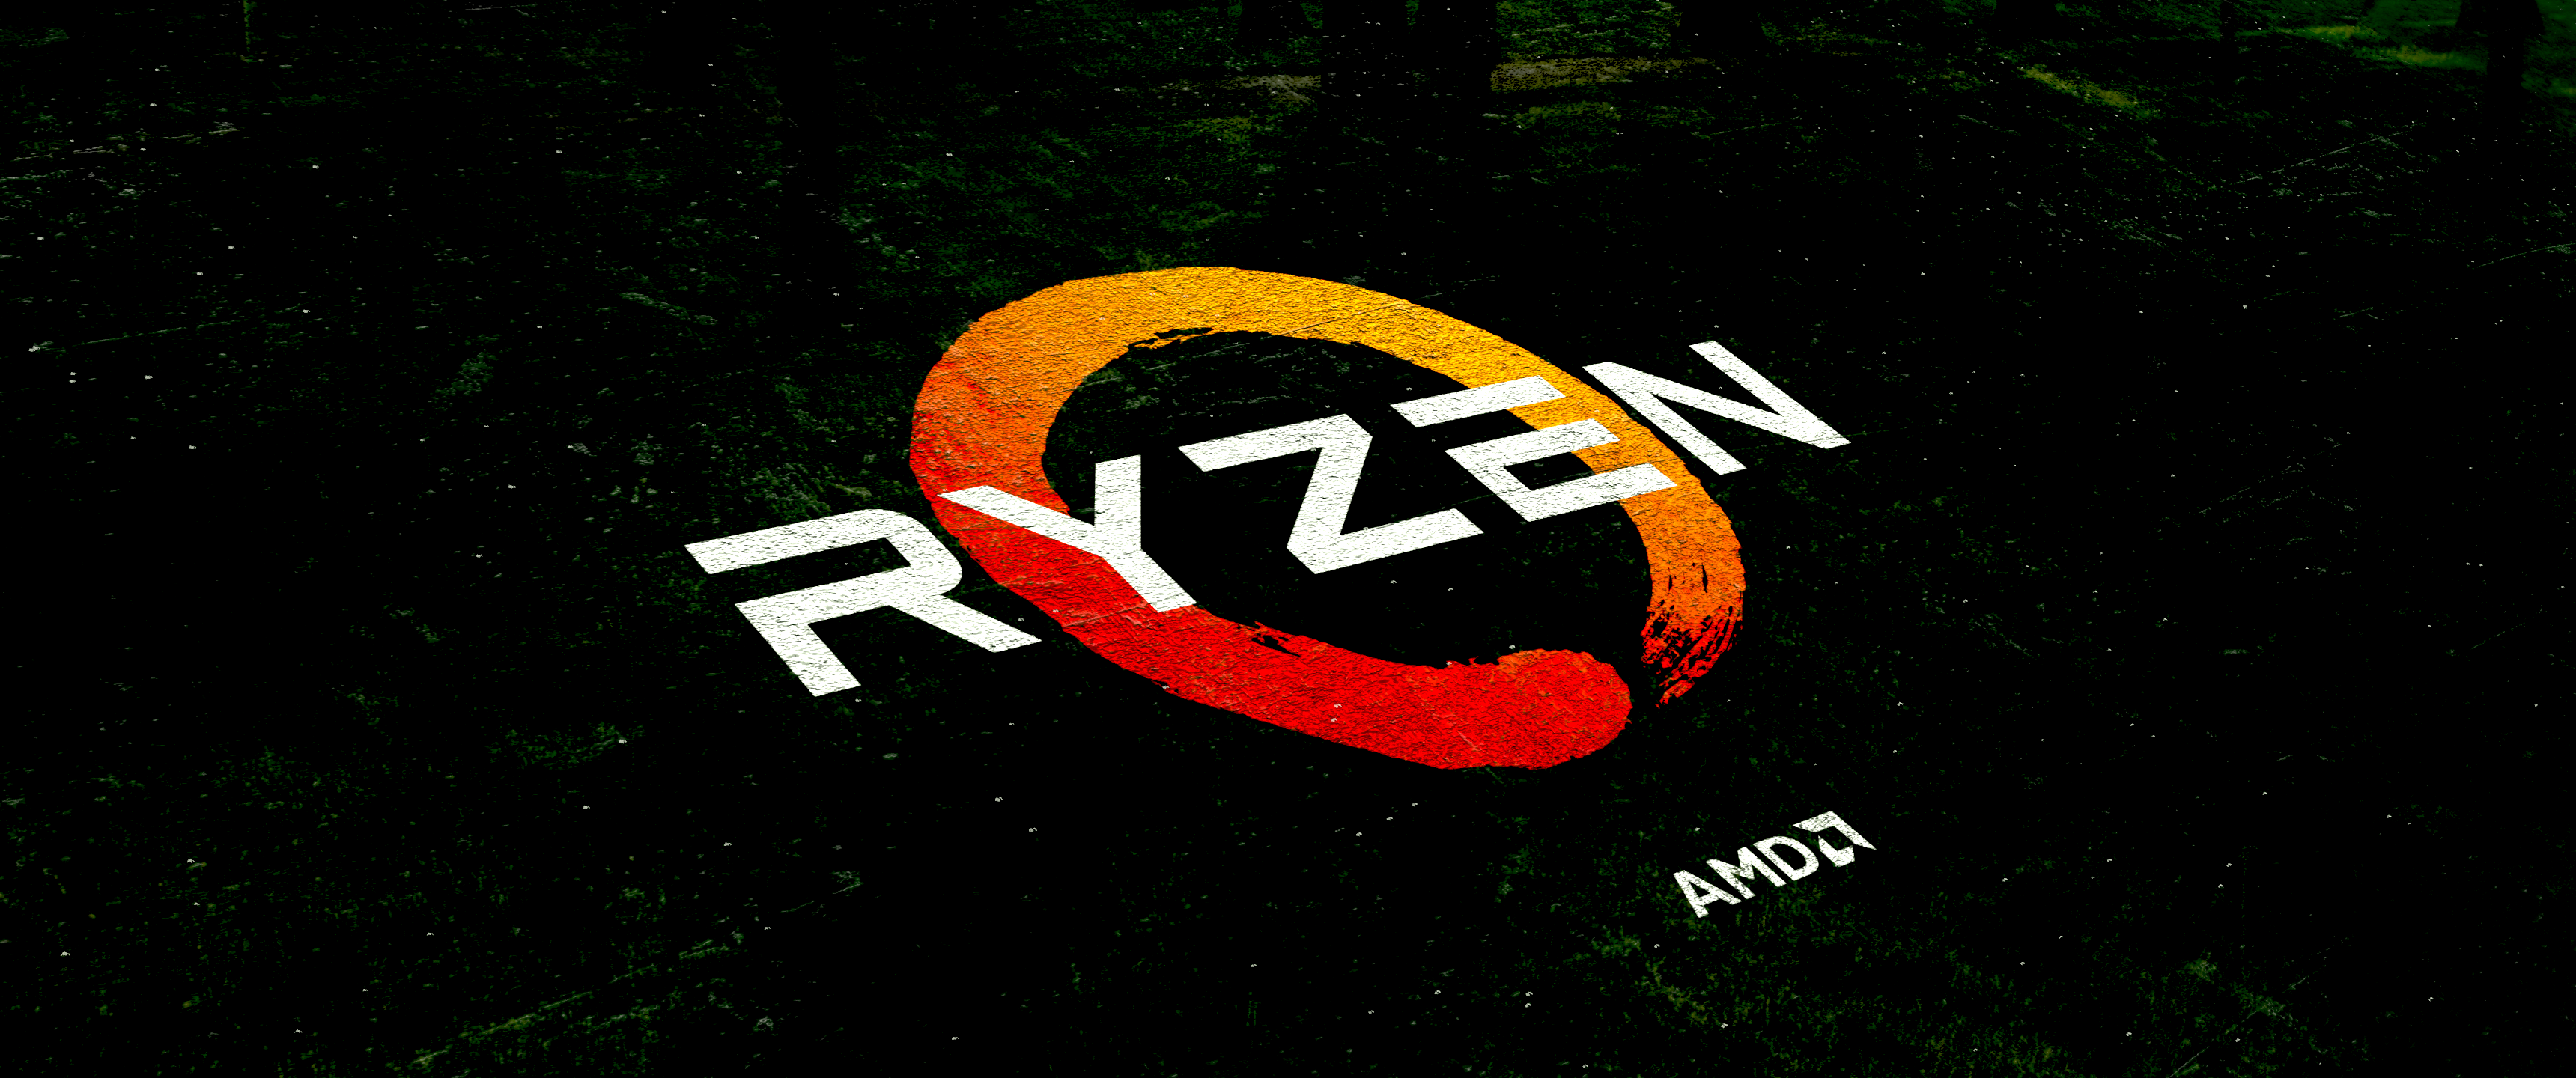 Ryzen Wallpapers Top Free Ryzen Backgrounds Wallpaperaccess